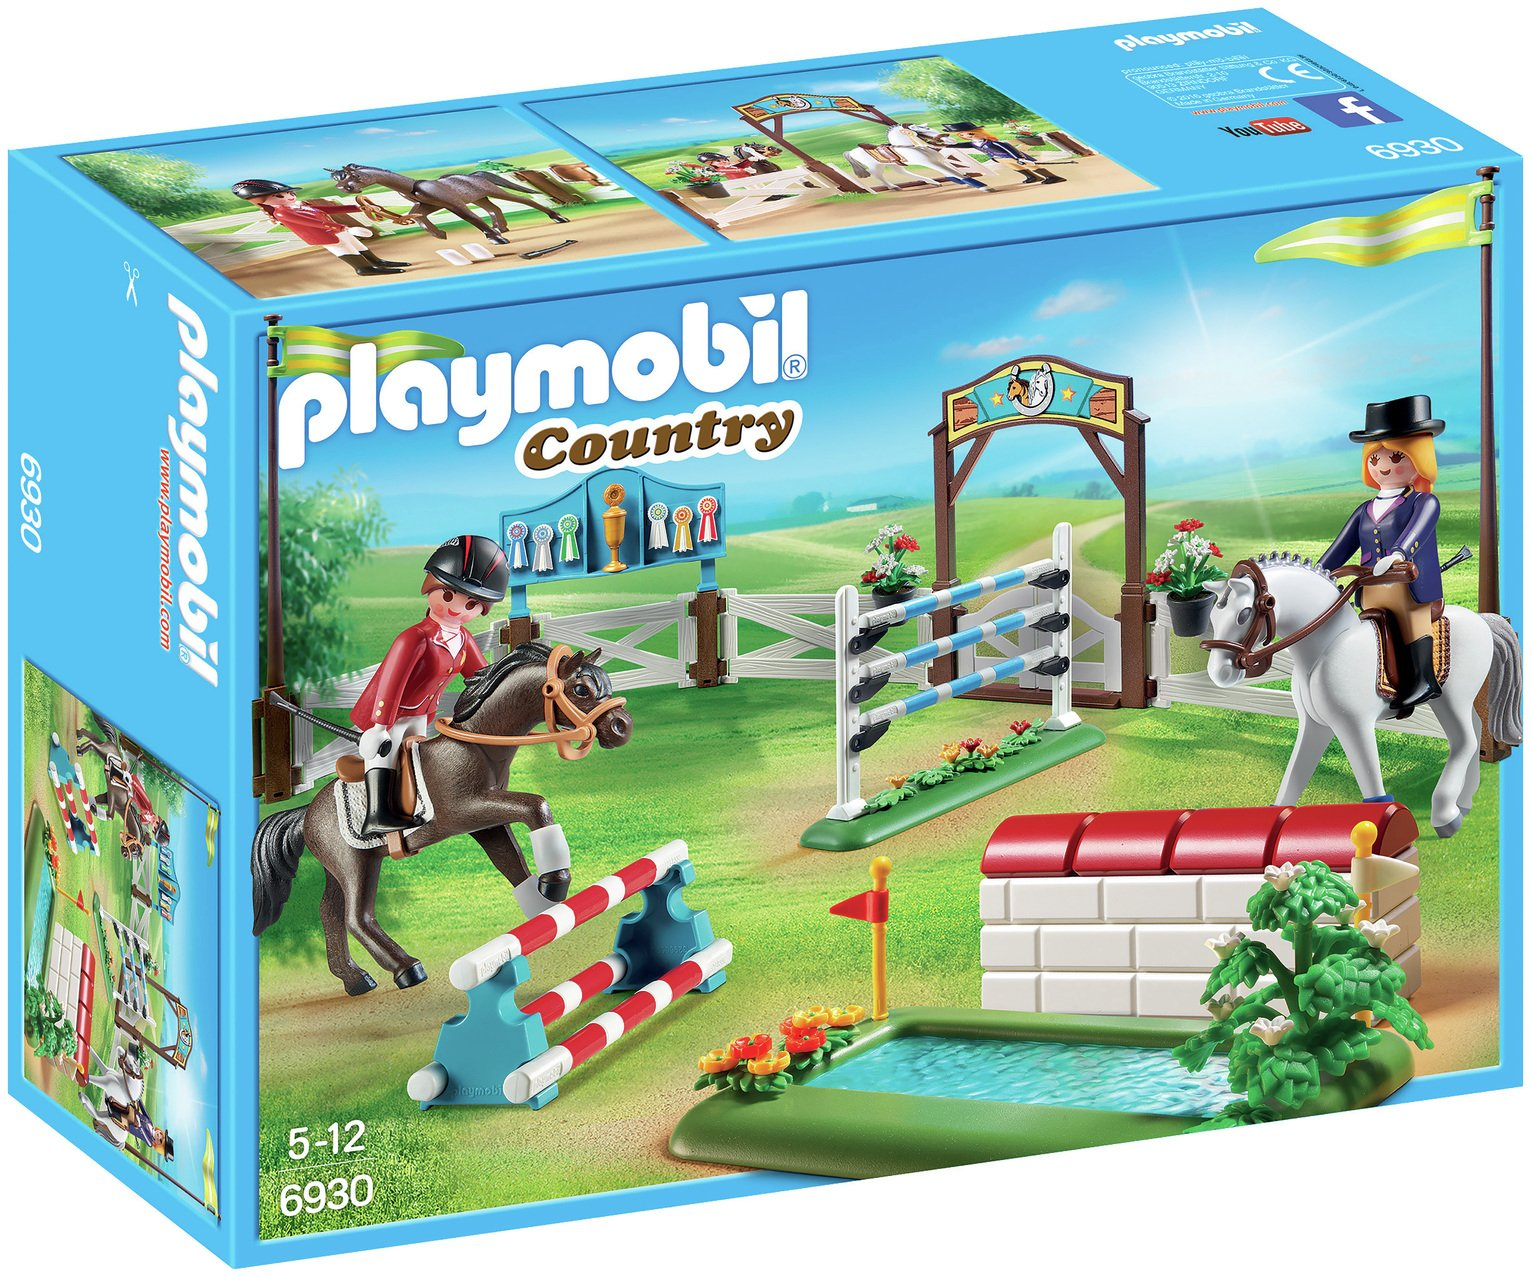 Playmobil 6930 Country Horse Show